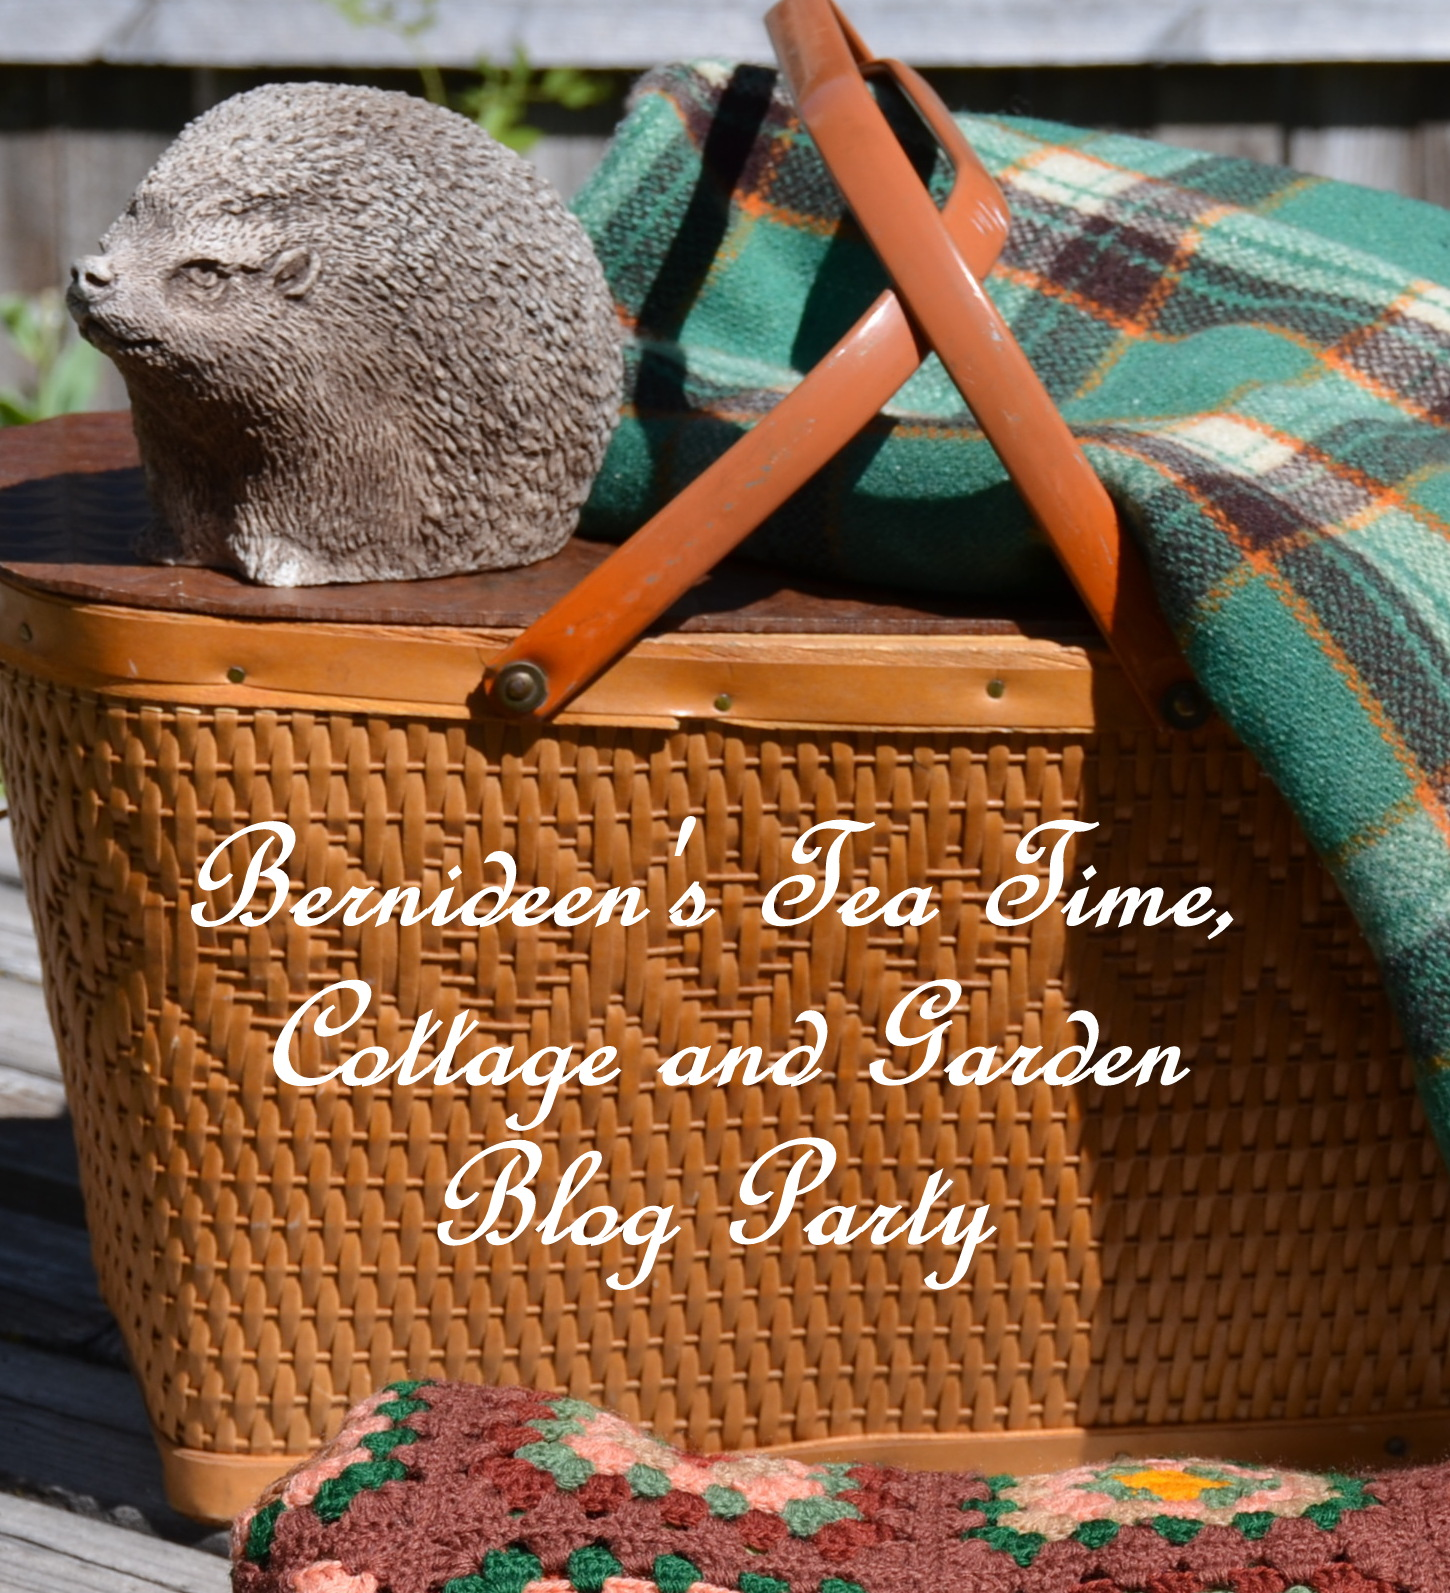 Bernideen's Tea Time  Cottage and Garden Blog Party